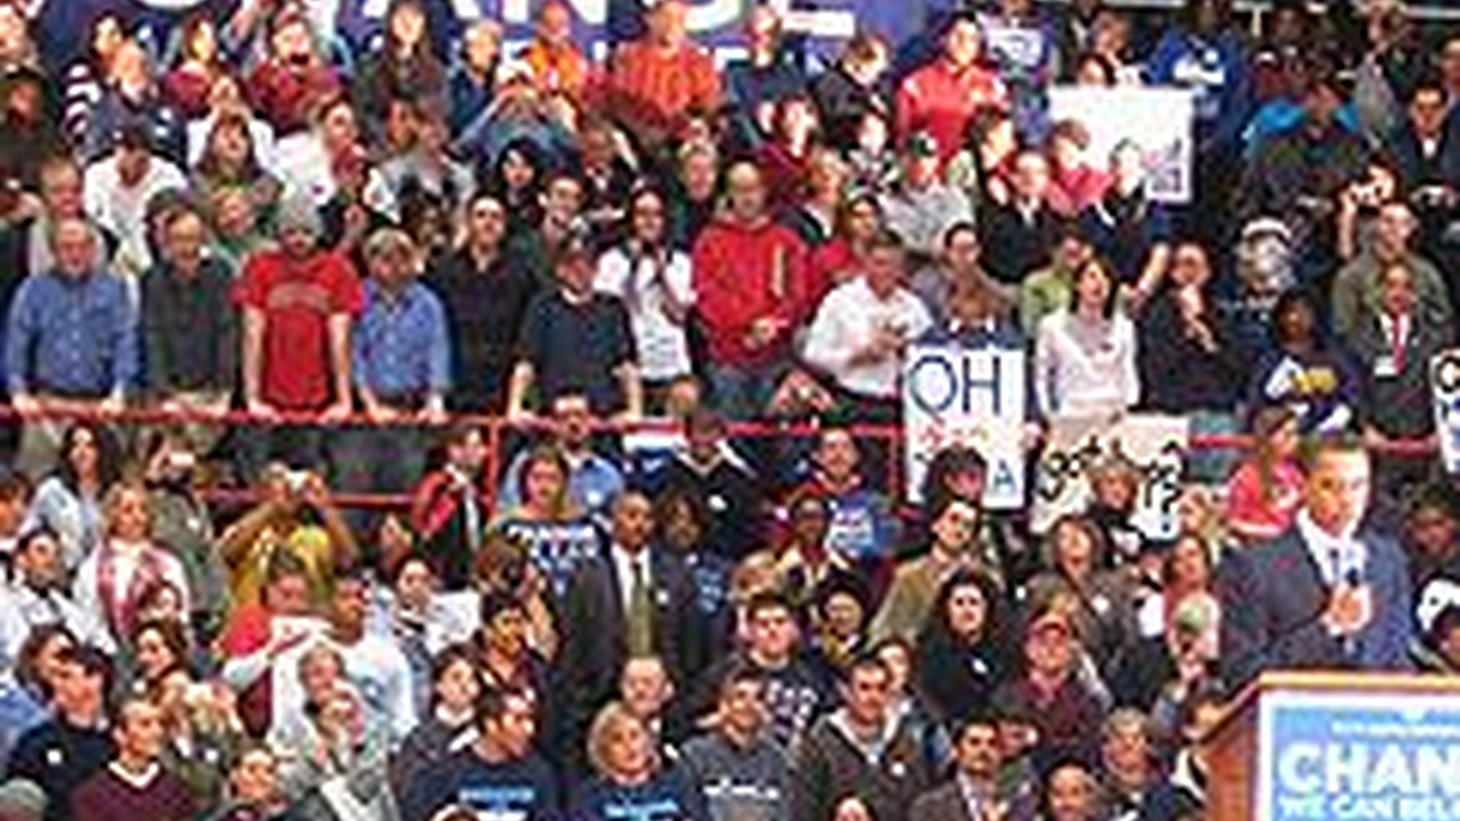 Barack Obama's historic win has been cause for celebration among many Americans, including African Americans who thought they might never see the day a black man would come so close to the White House. But what does the rest of the world think? On Reporter's Notebook, the Lakers and Celtics are back in the NBA finals for the first time since the days of Magic Johnson and Larry Bird. It's been twenty years since their last matchup. How fierce is the rivalry today?